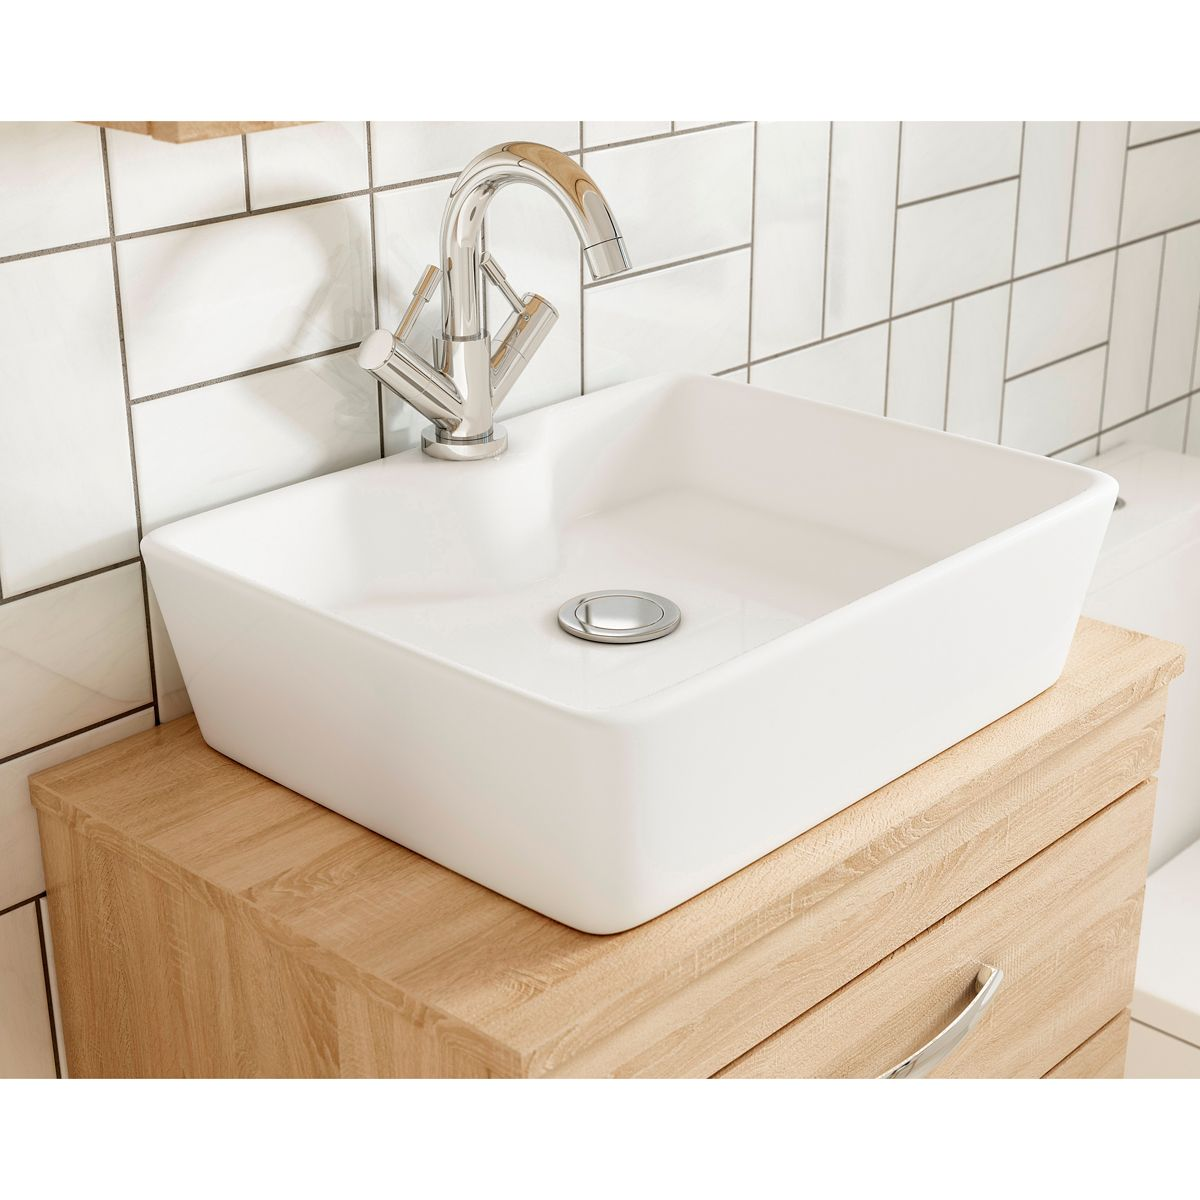 Nuie Athena Basin Option 4 -  Worktop